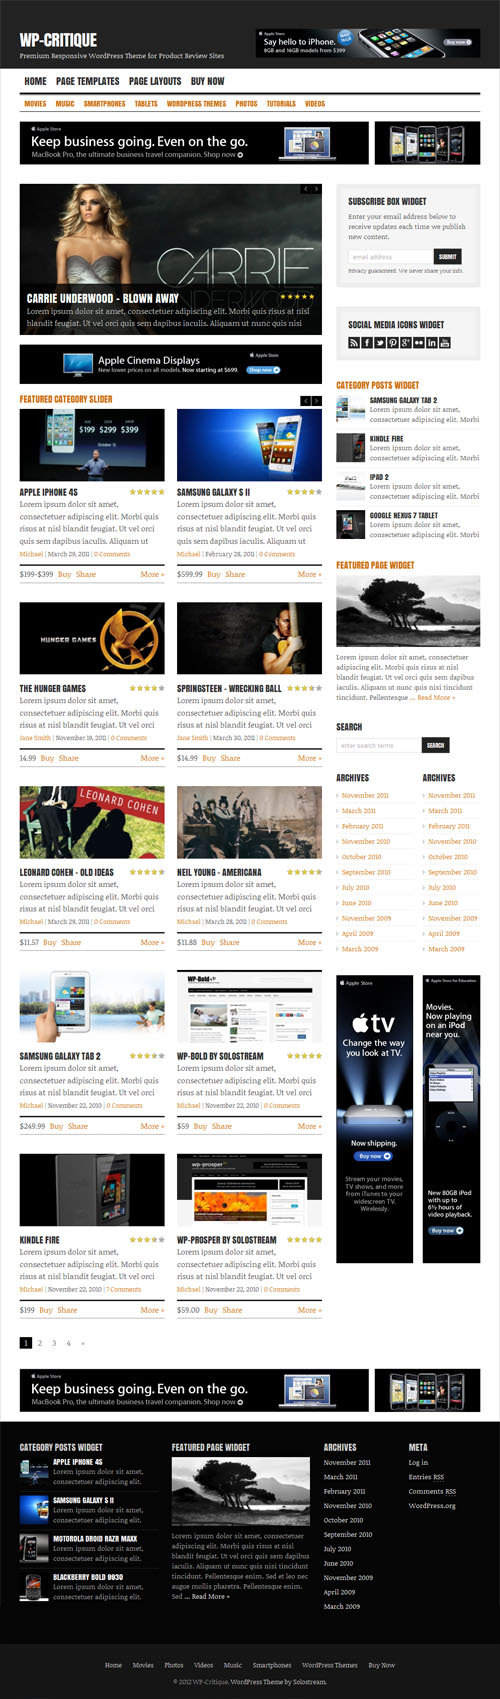 Product review magazine wordpress theme wp critique for Product review template wordpress